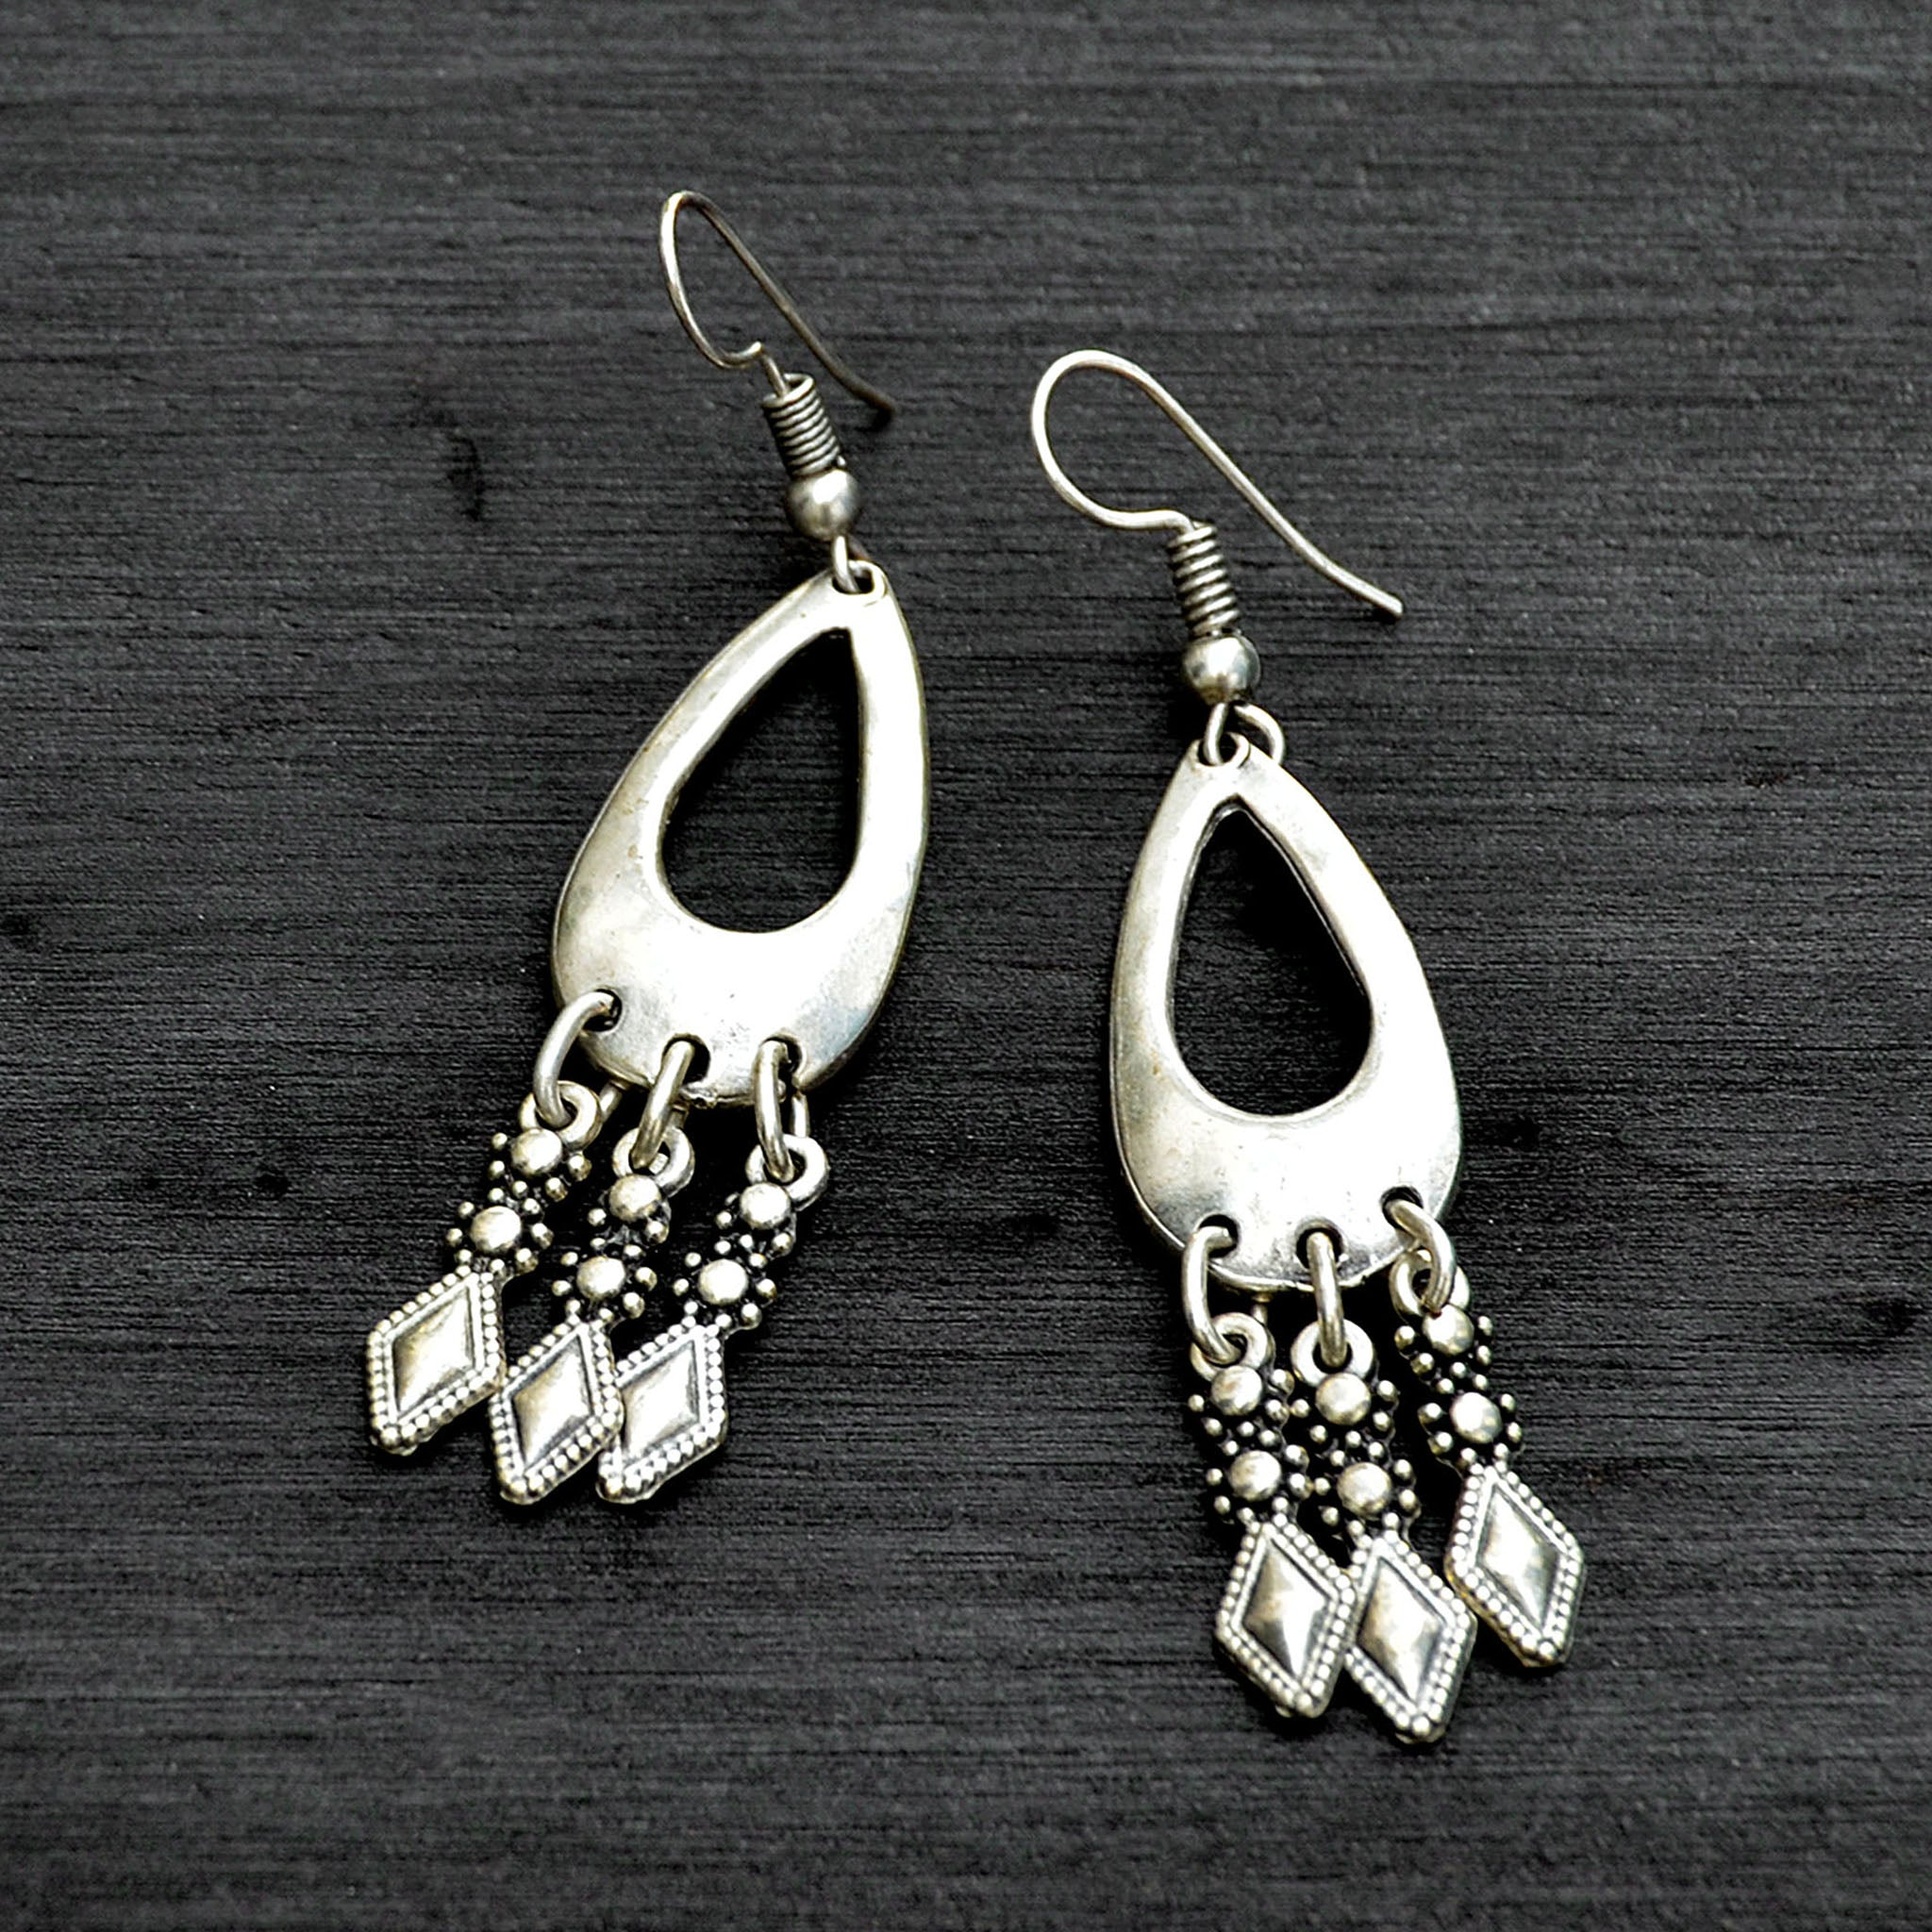 Antique turkish earrings